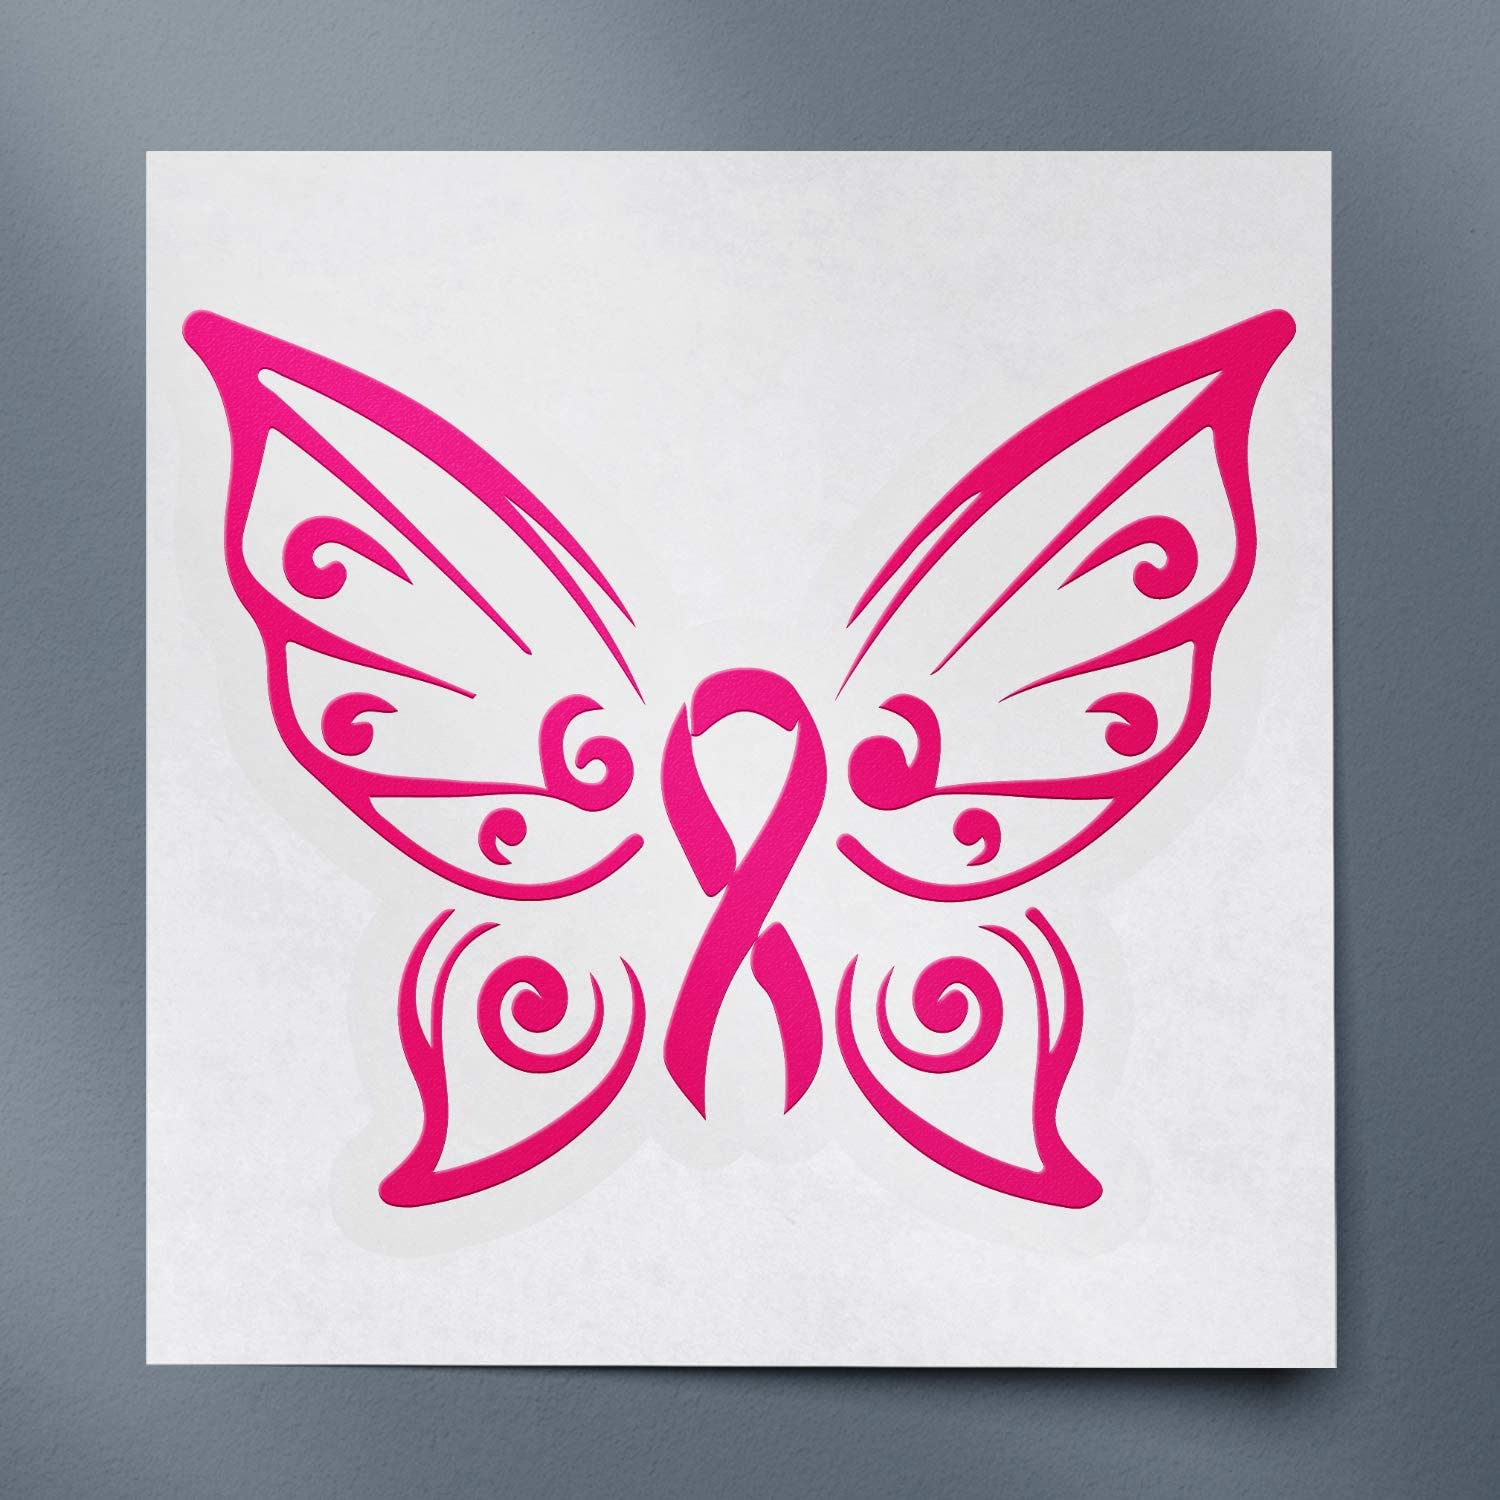 Cancer Awareness Butterfly Wings With Pink Ribbon (Pink) (Set Of 2) Premium Waterproof Vinyl Decal Stickers For Laptop Phone Accessory Helmet Car Window Bumper Mug Tuber Cup Door Wall Decoration